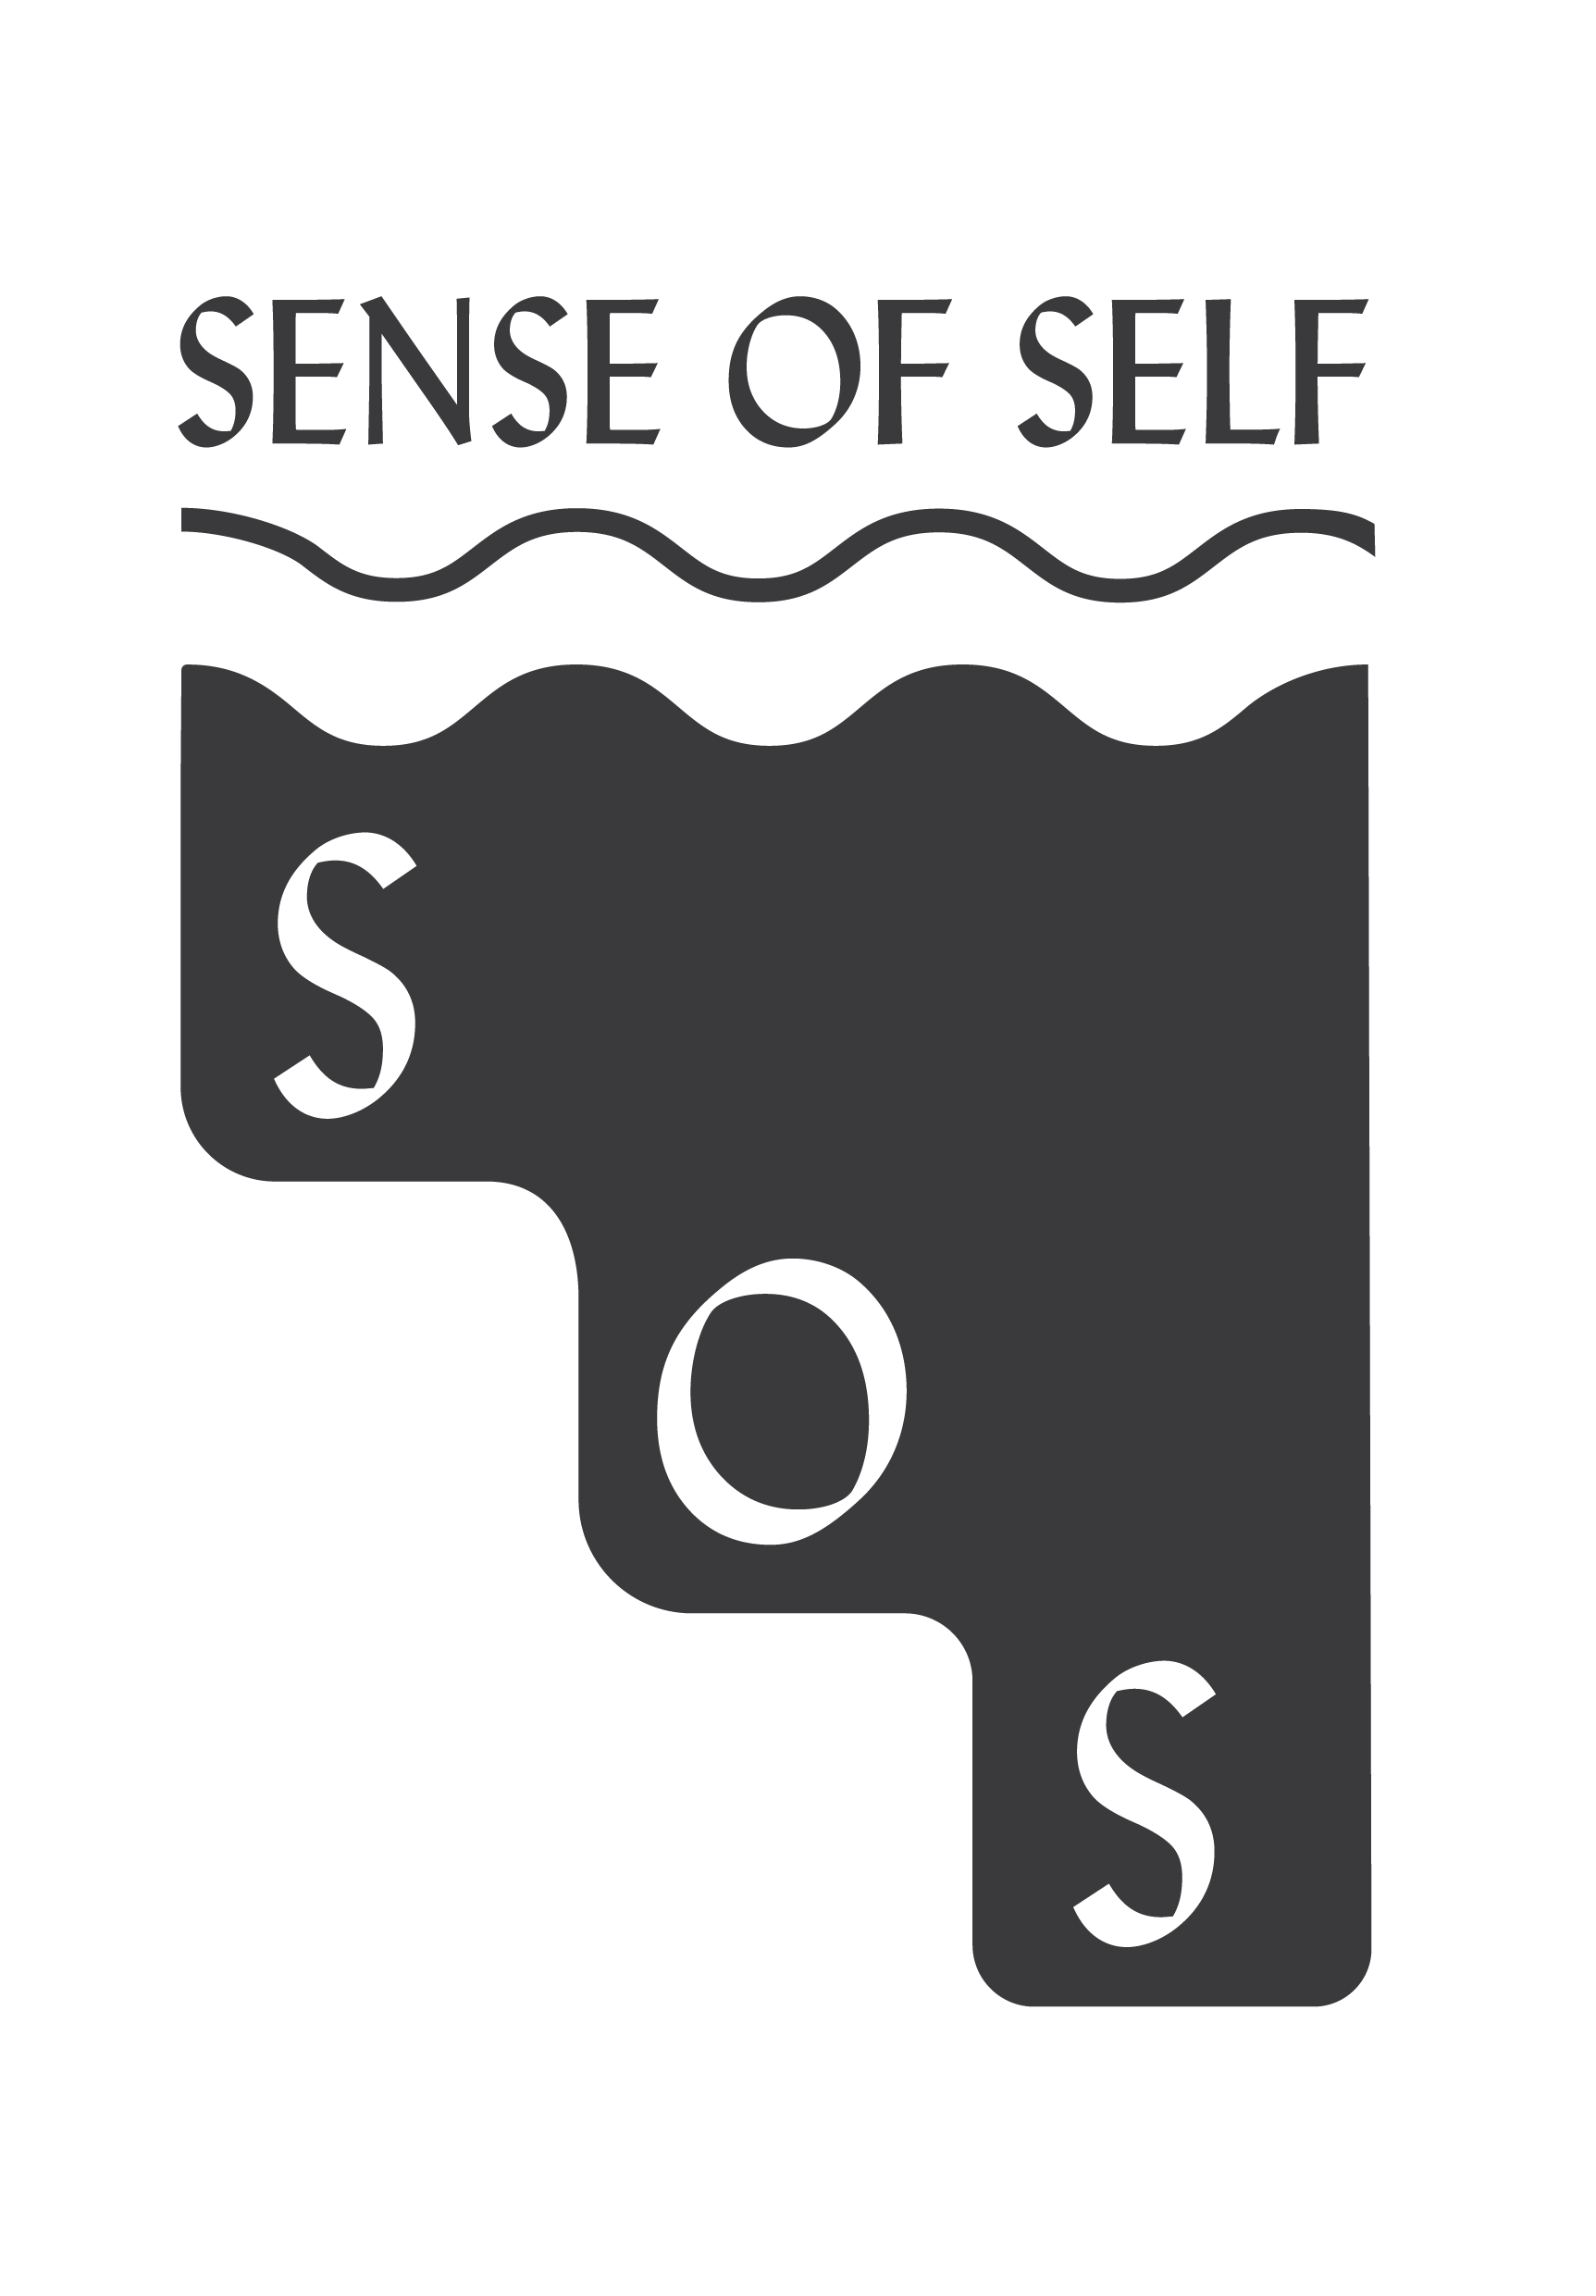 Sense Of Self (SOS)